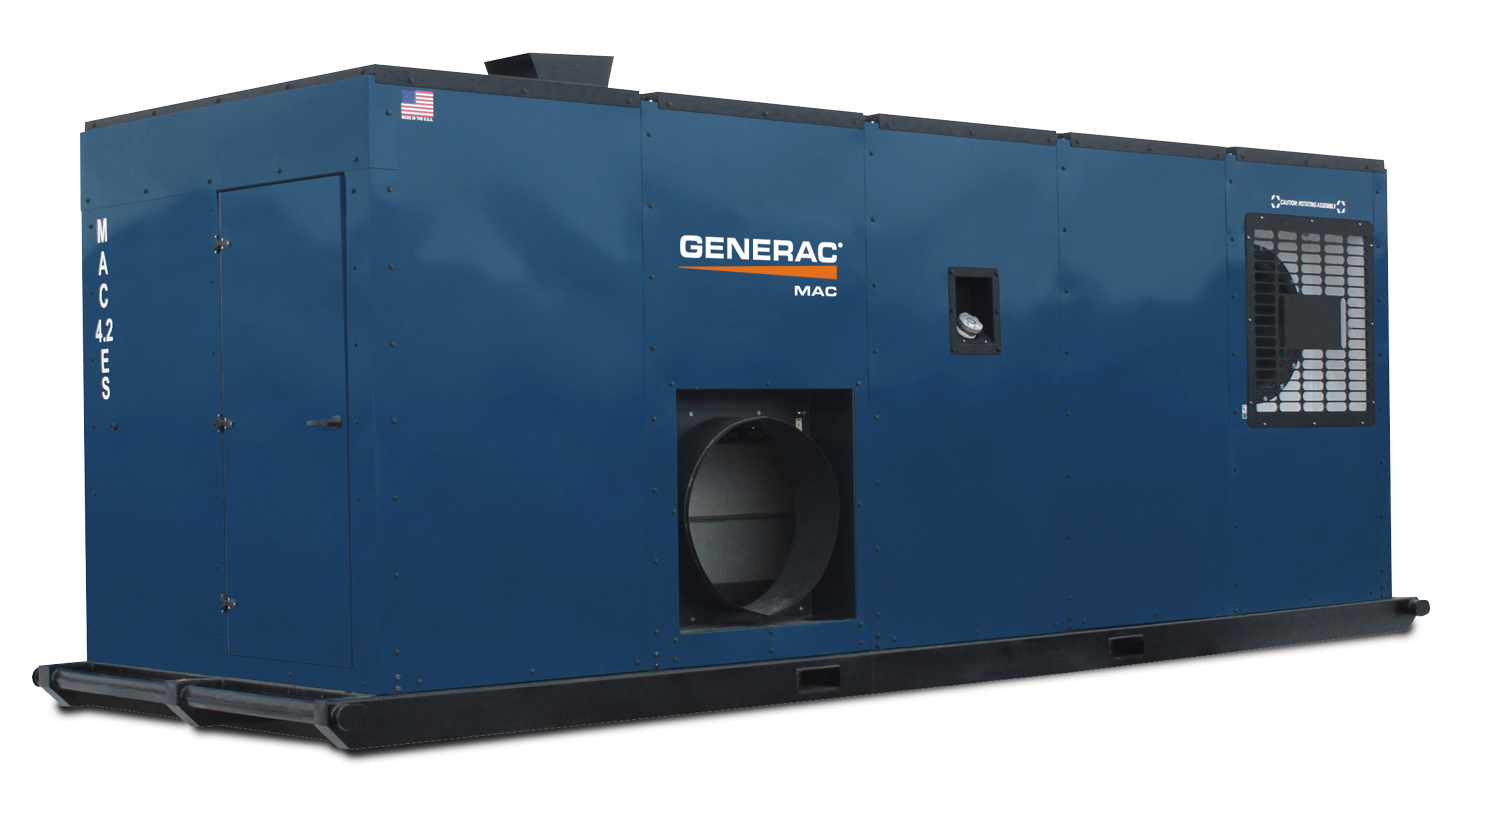 generac mac4.2 mobile indirect fired heater